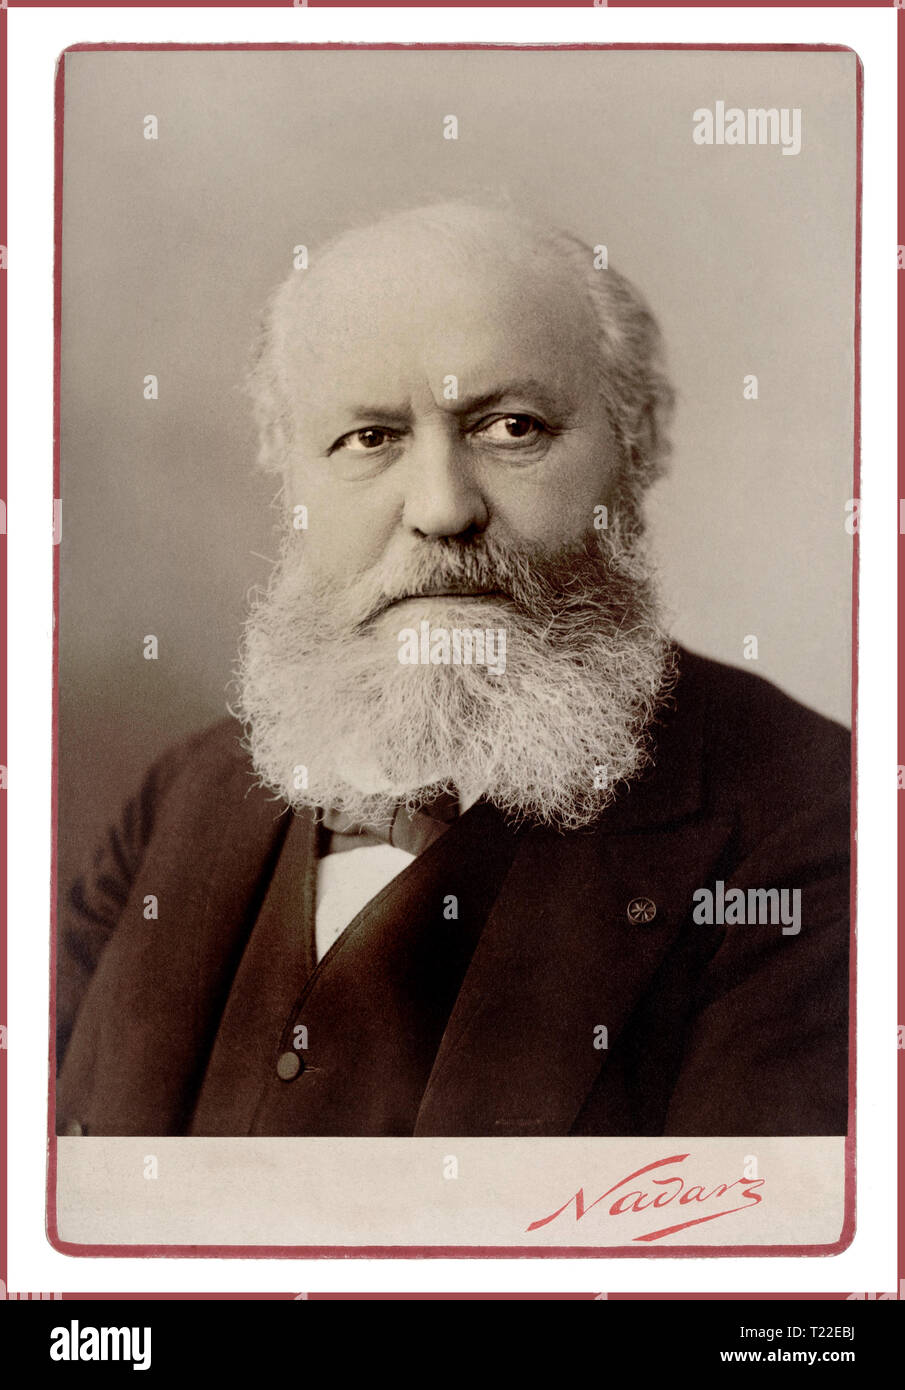 GOUNOD Vintage' Nadar' portrait of Charles-François Gounod a French composer, best known for his Ave Maria, based on a work by Bach, as well as his opera Faust.   Paris Studio Portrait by celebrated and innovative Photographer 'Nadar' Date 1890 - Stock Image